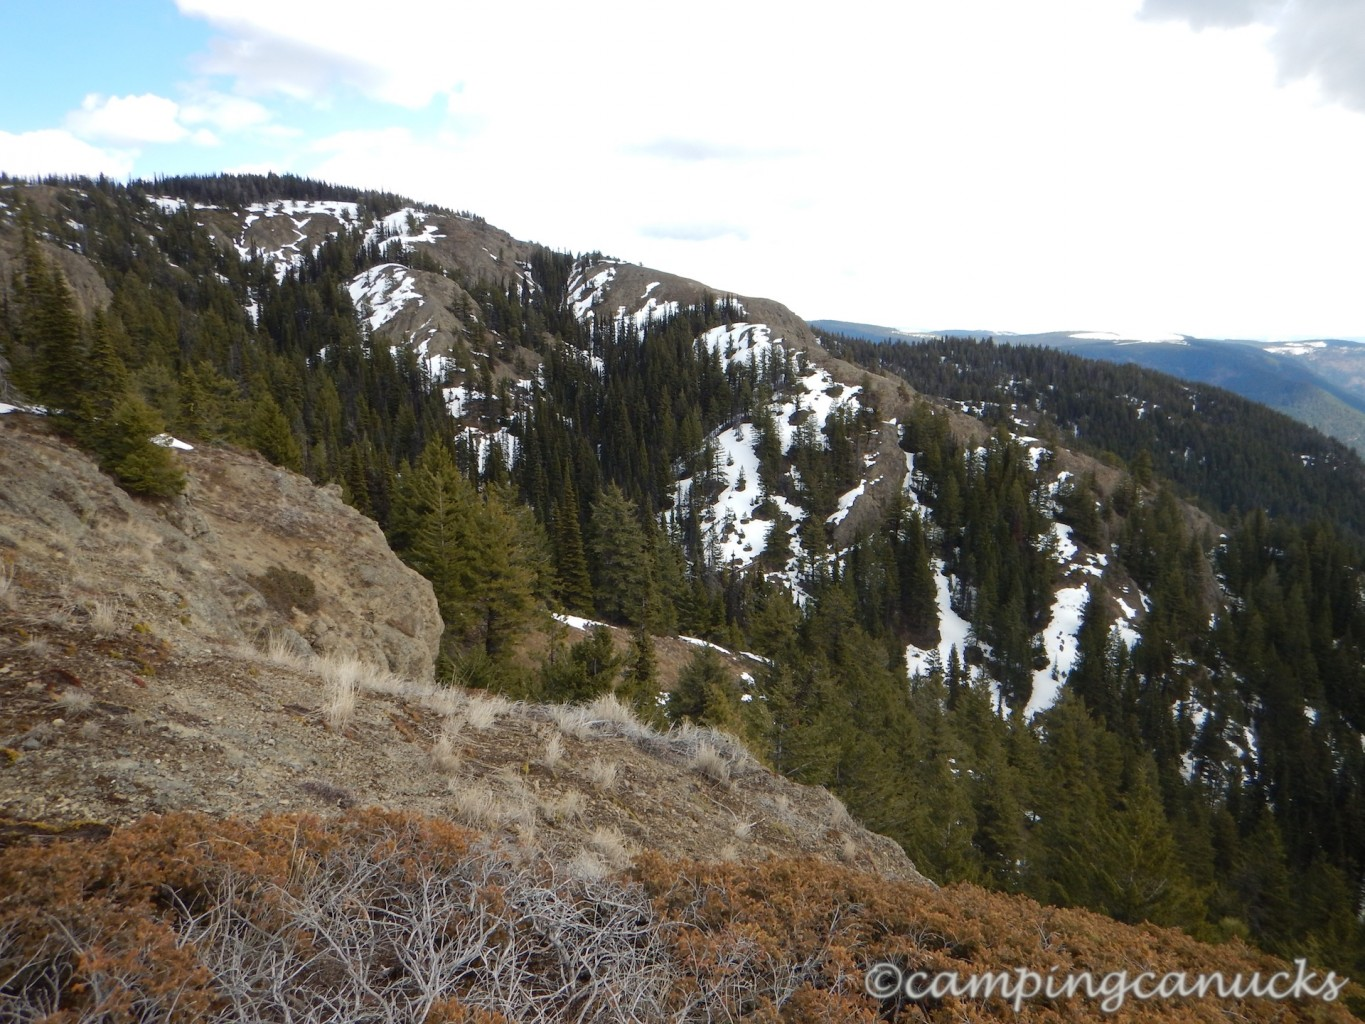 Eastern slopes along the trail